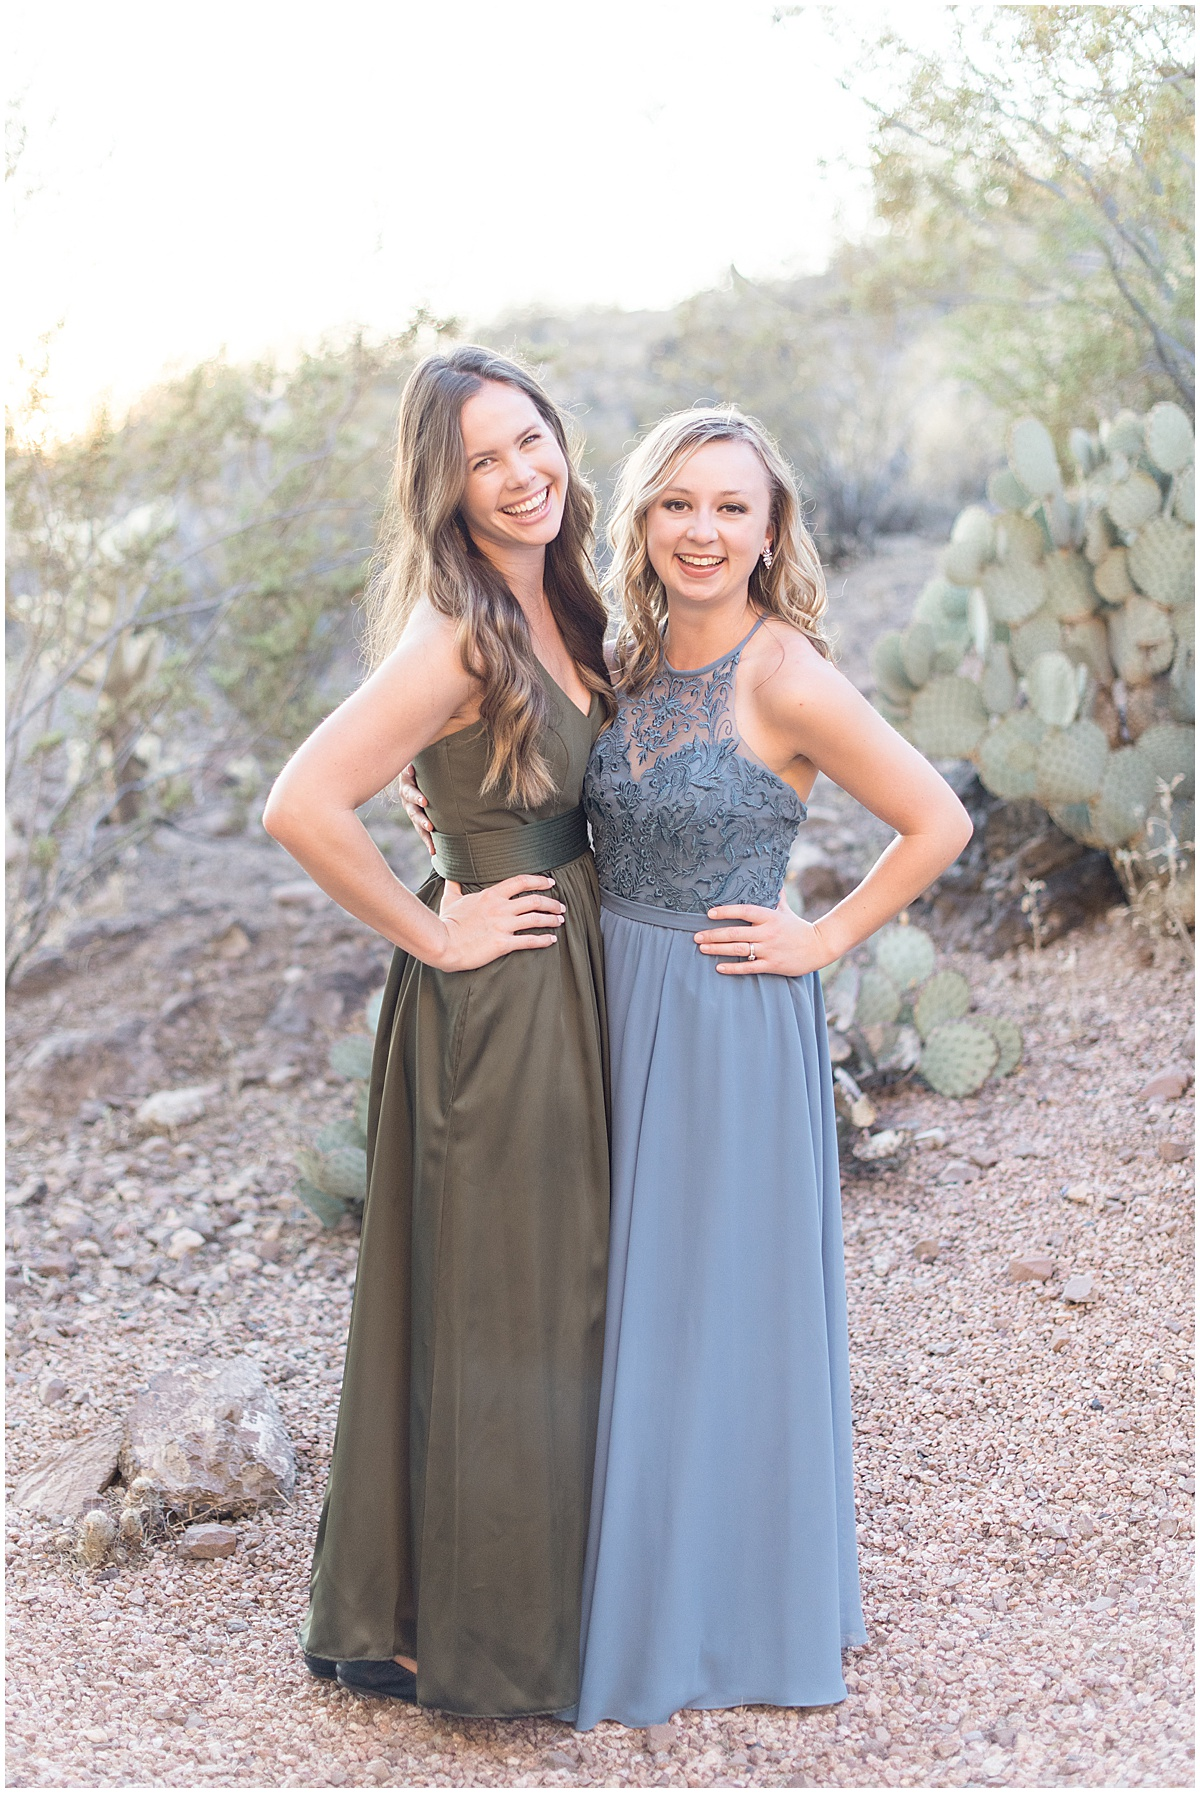 Victoria Rayburn Photography and Sarah Elizabeth Photos at Showit United 2019